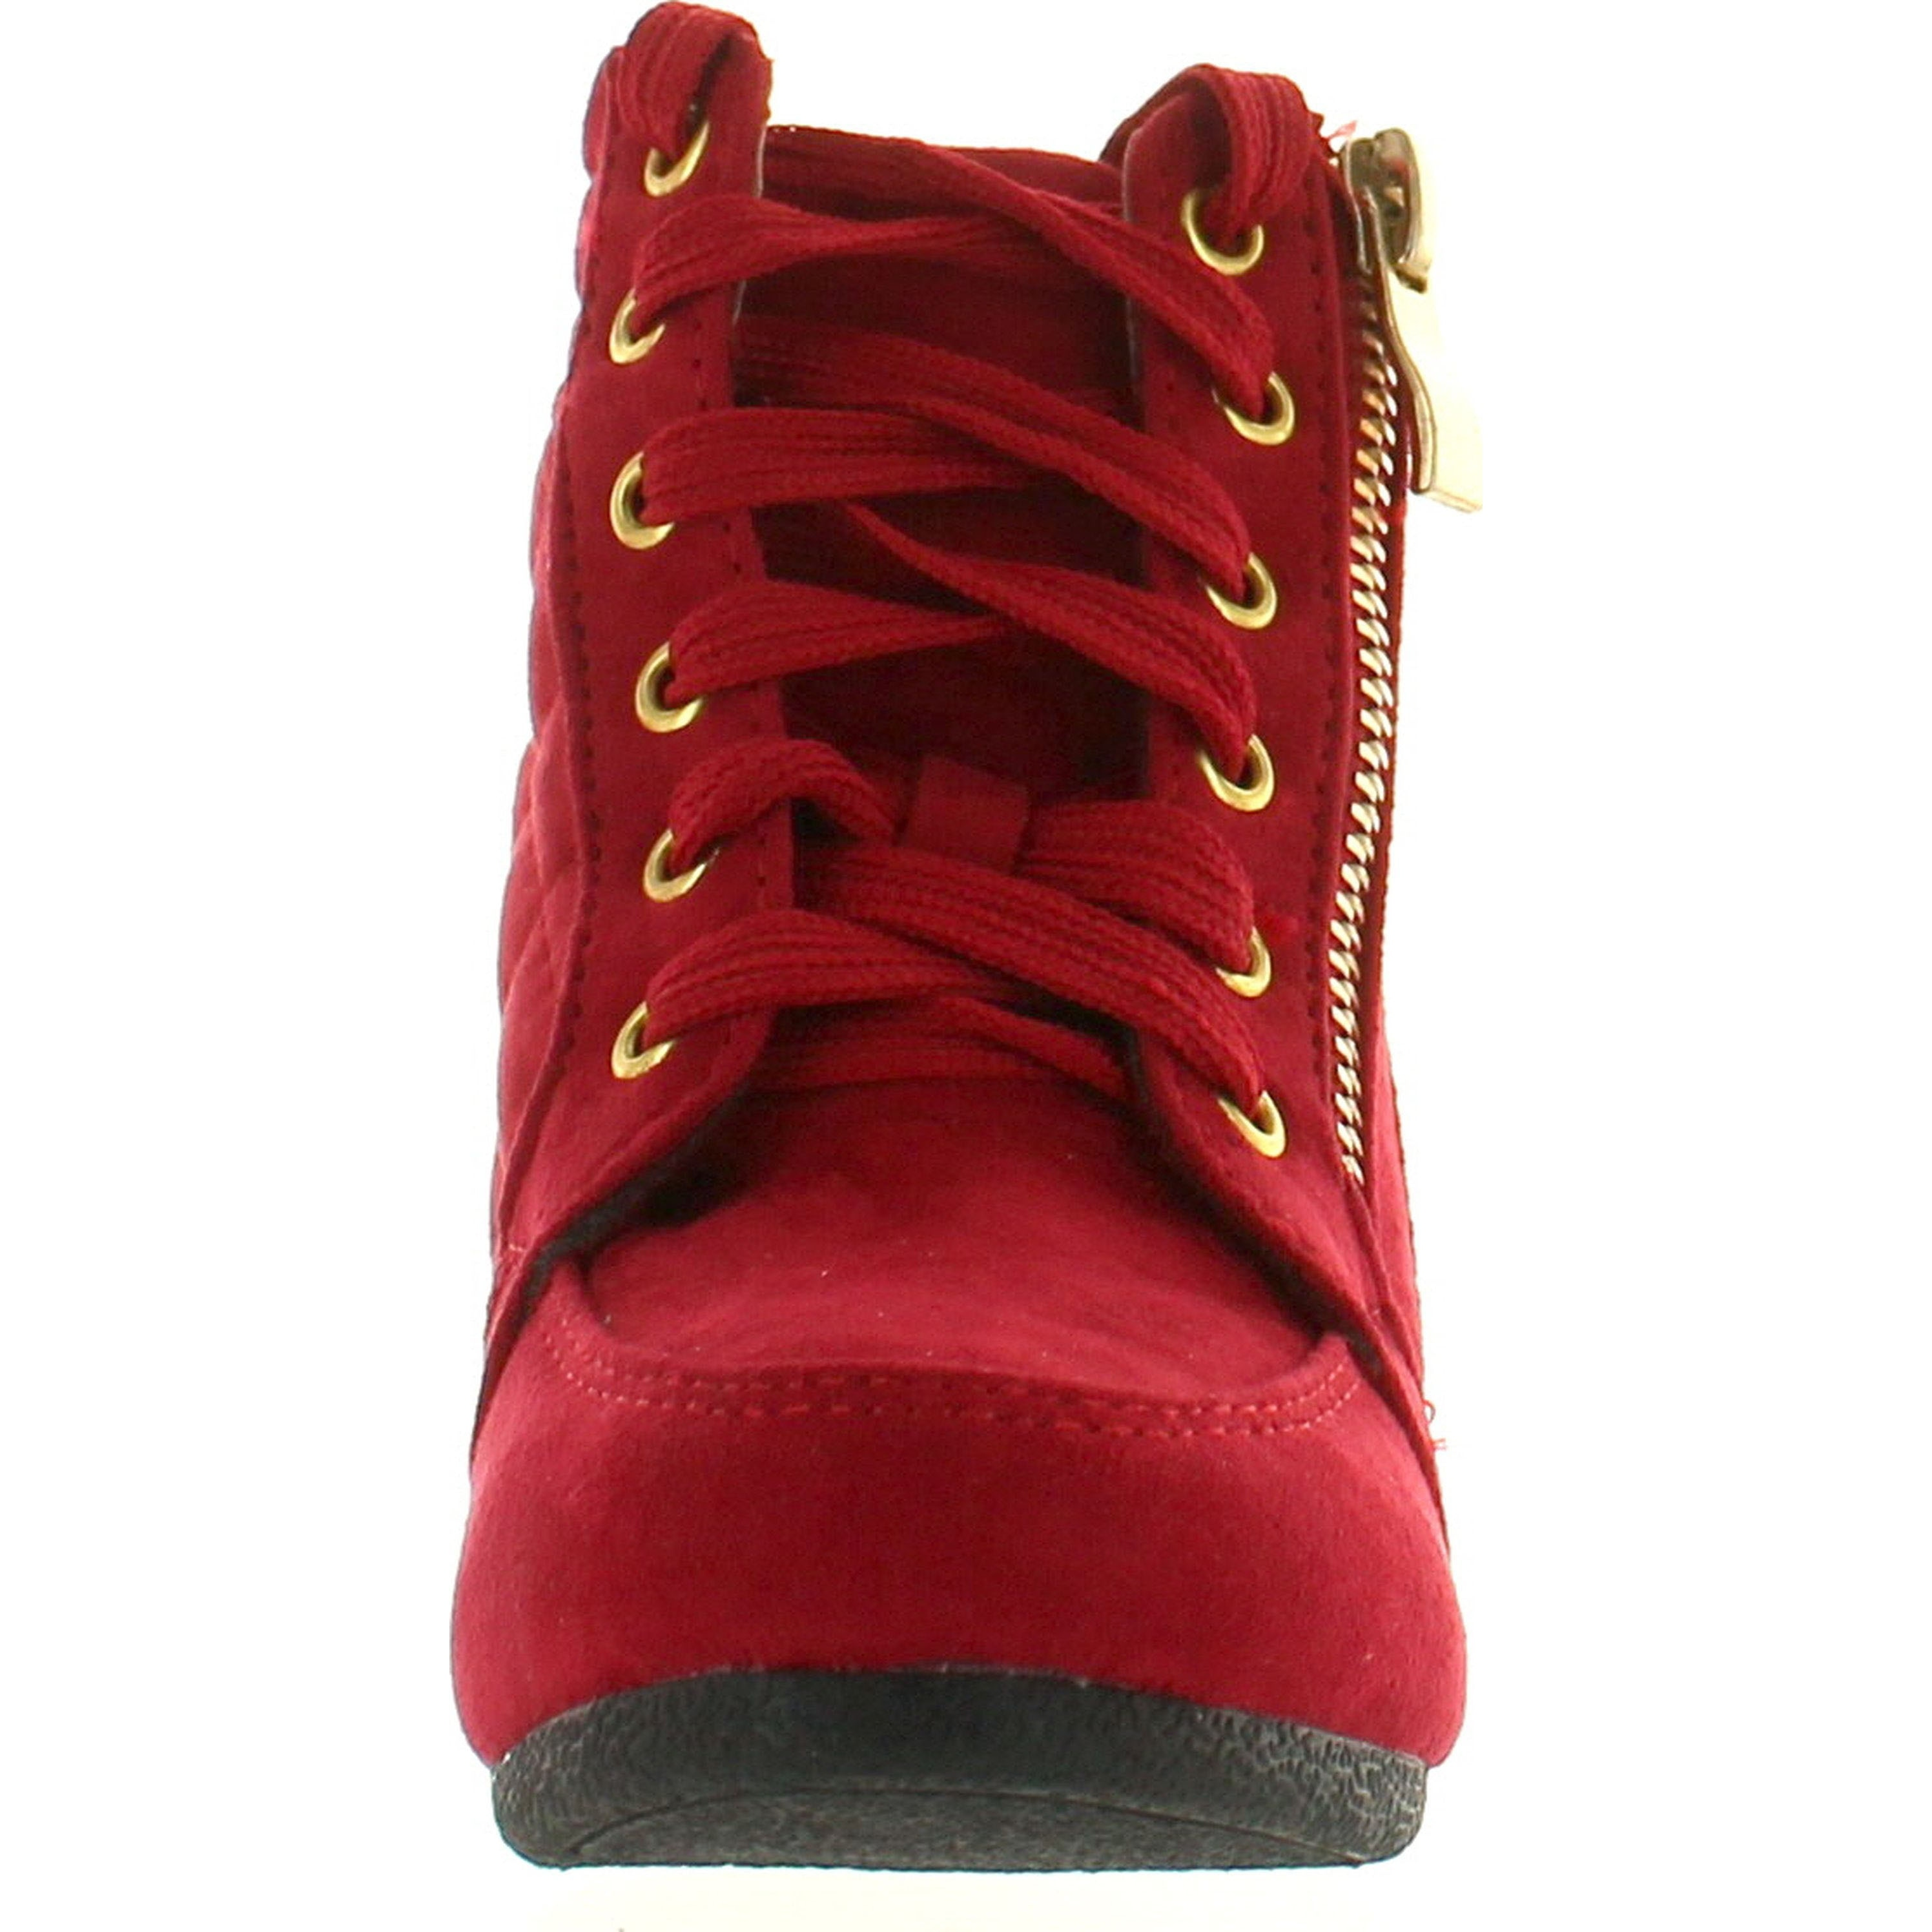 e574711eff5 Shop Link Peggy-63K Children Girl s Wedge Heel Lace Up Diamond Shape  Quilted Sneakers - Free Shipping On Orders Over  45 - Overstock - 14312224